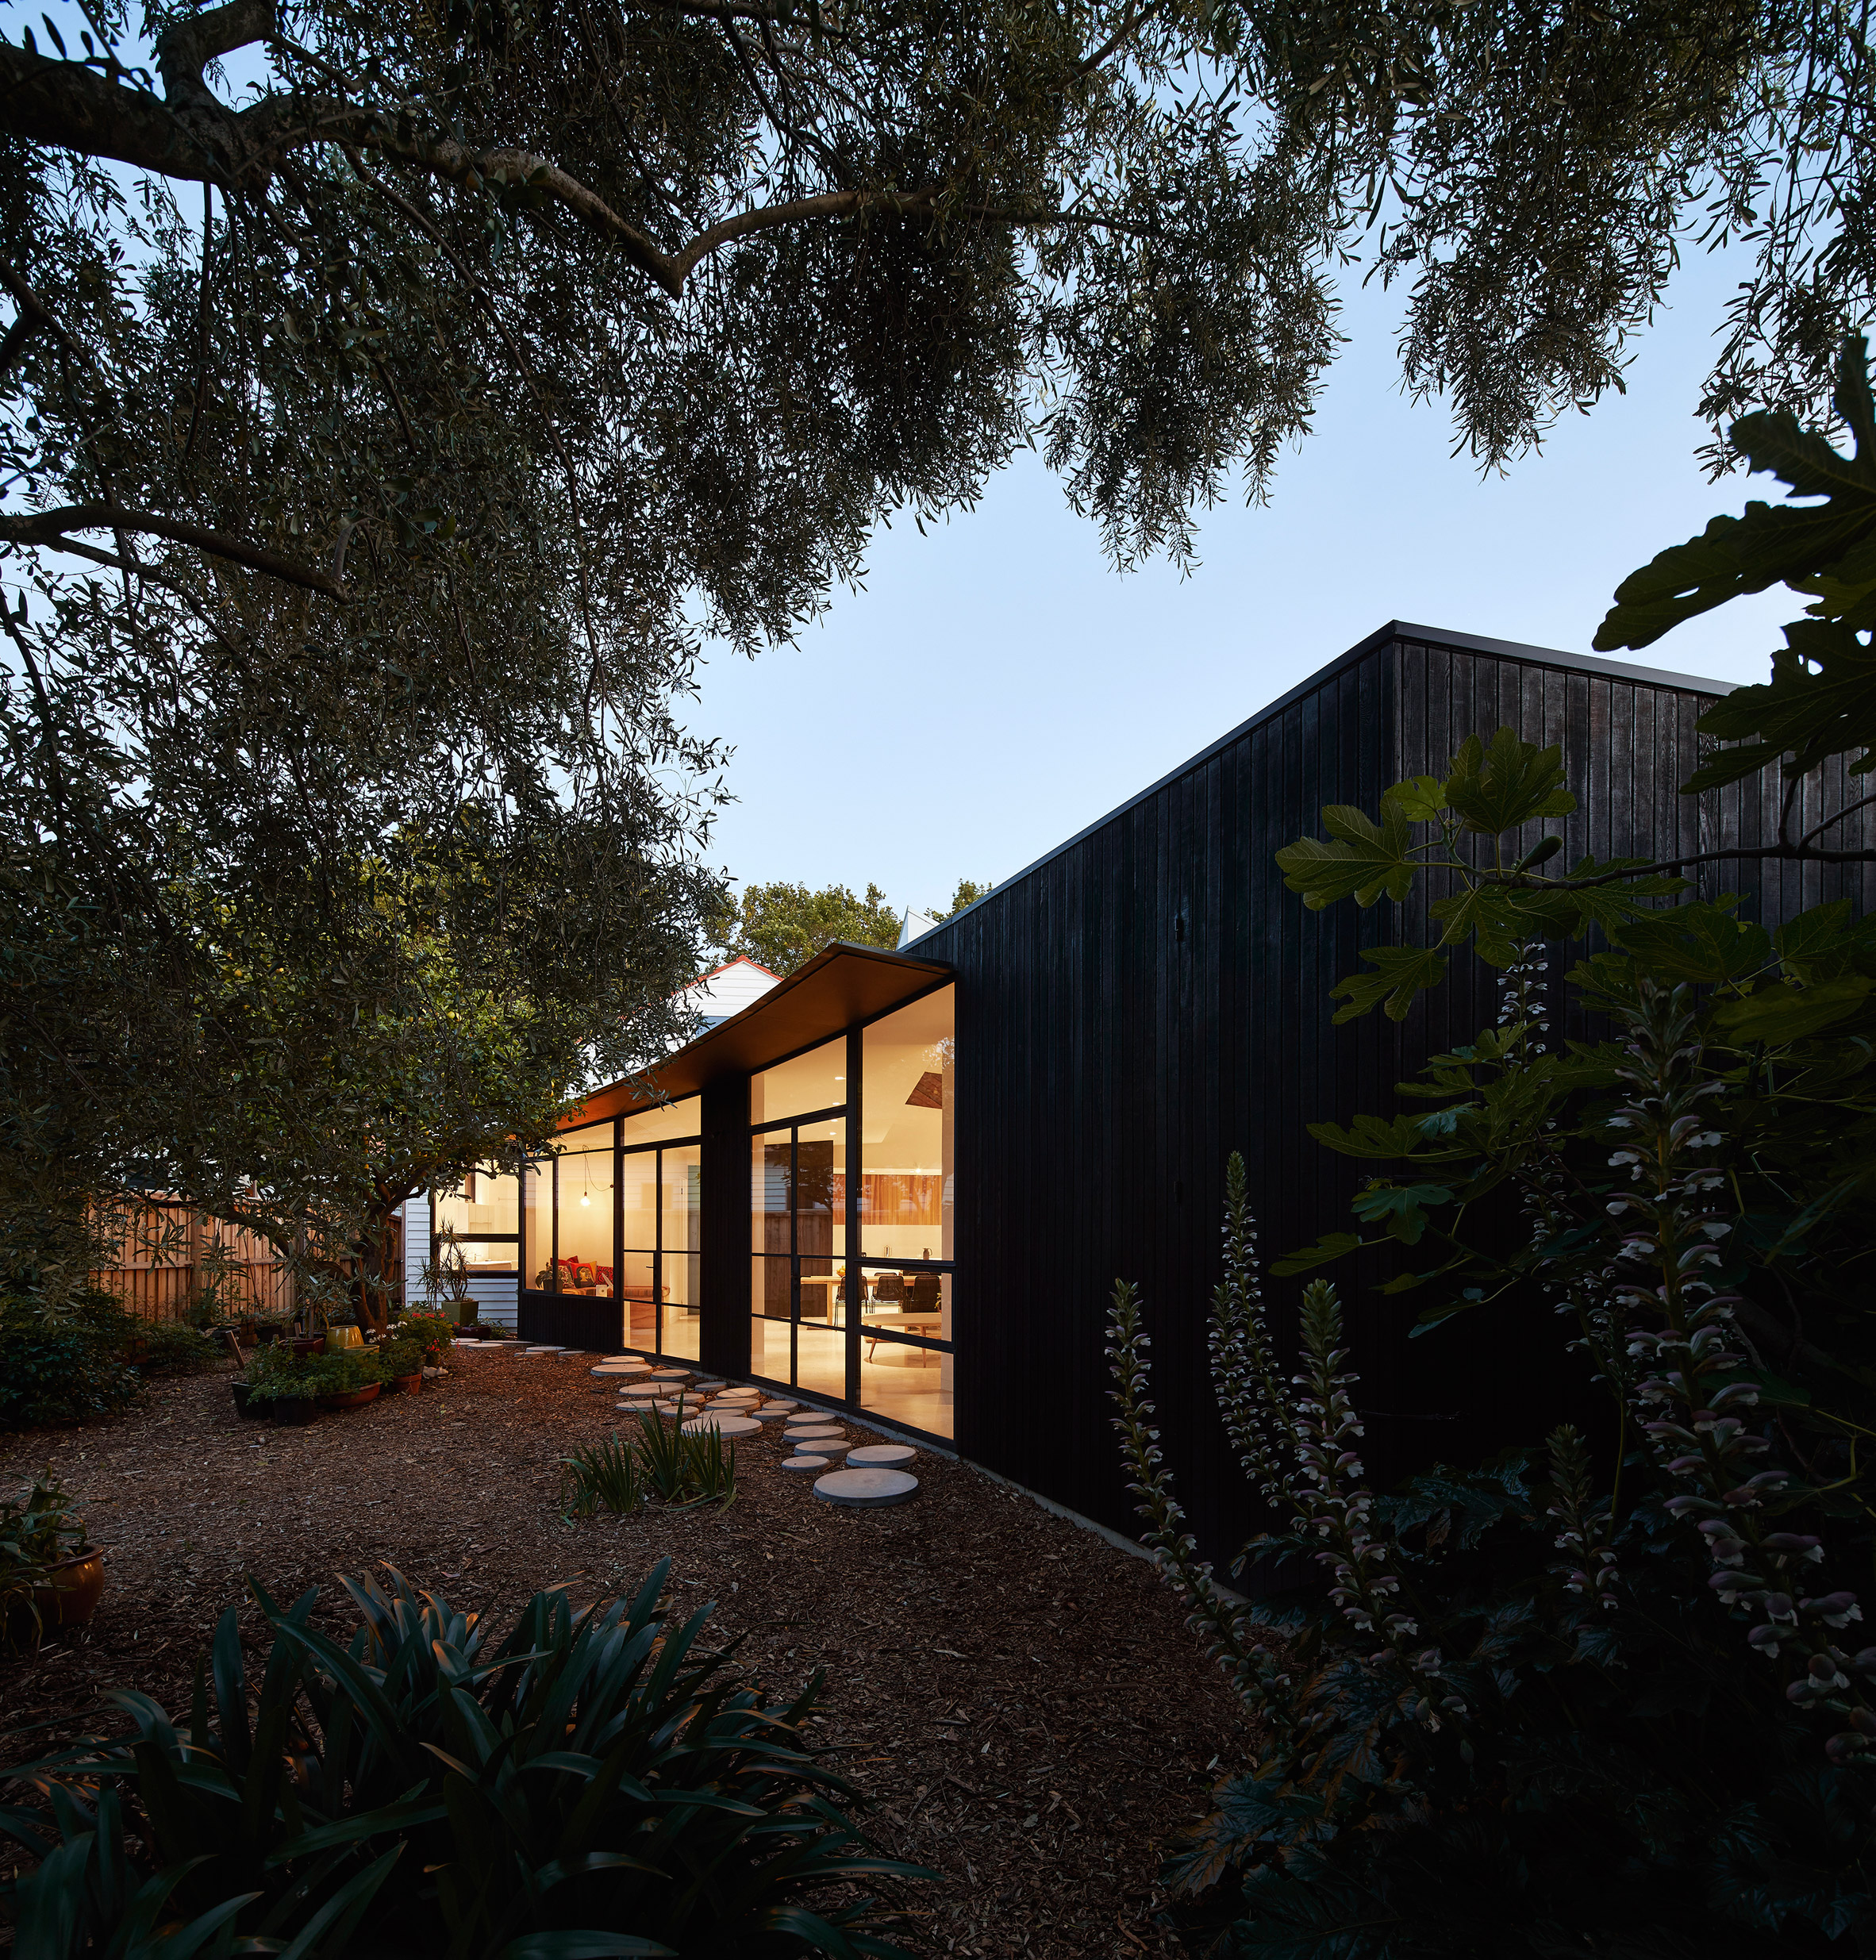 Dark Timber House Offers Refuge For Homeowner With Sleep